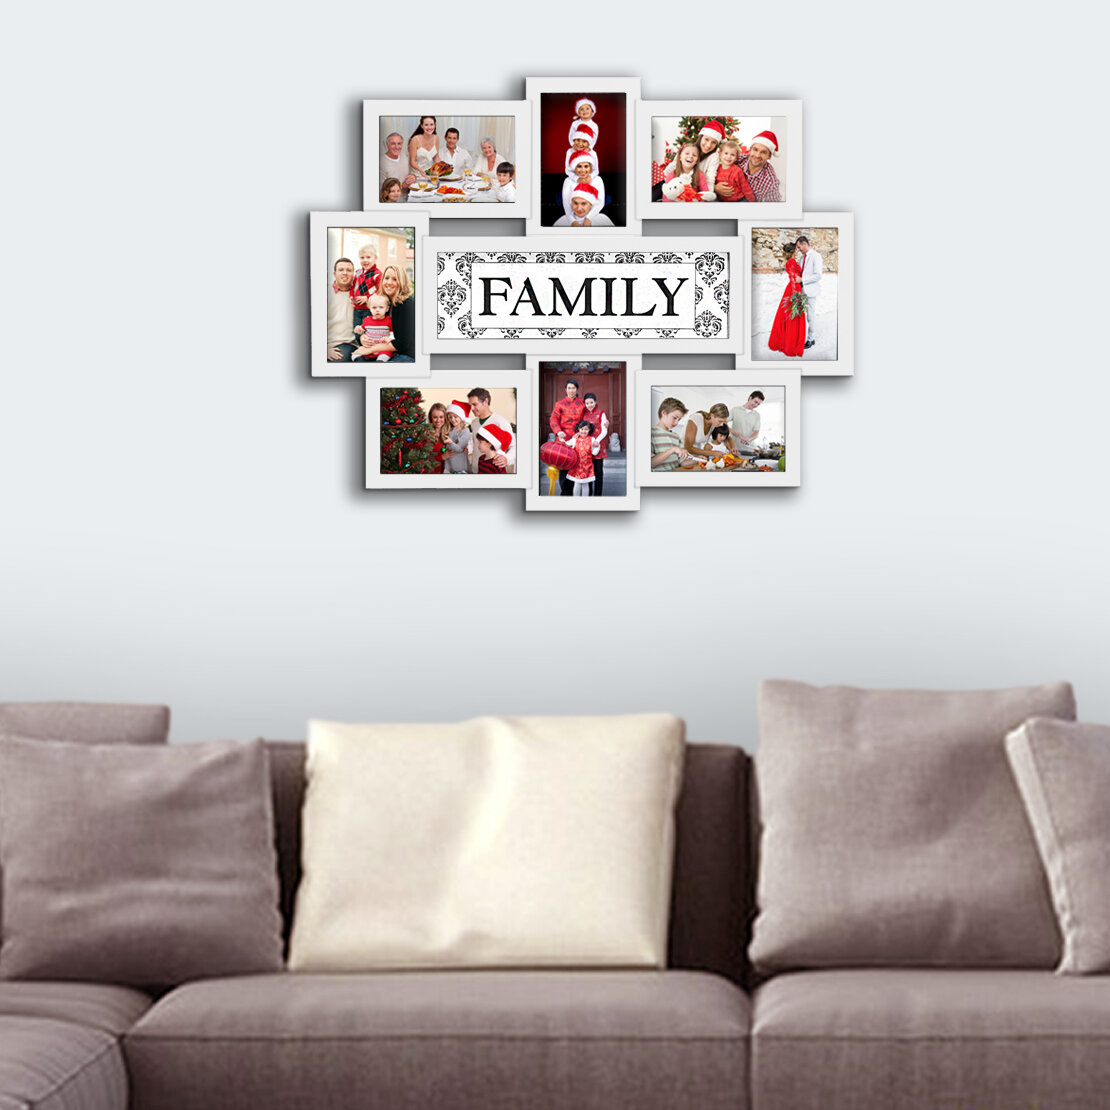 Red Barrel Studio Geffrey Family Selfie Gallery Collage Wall Hanging Picture Frame Reviews Wayfair